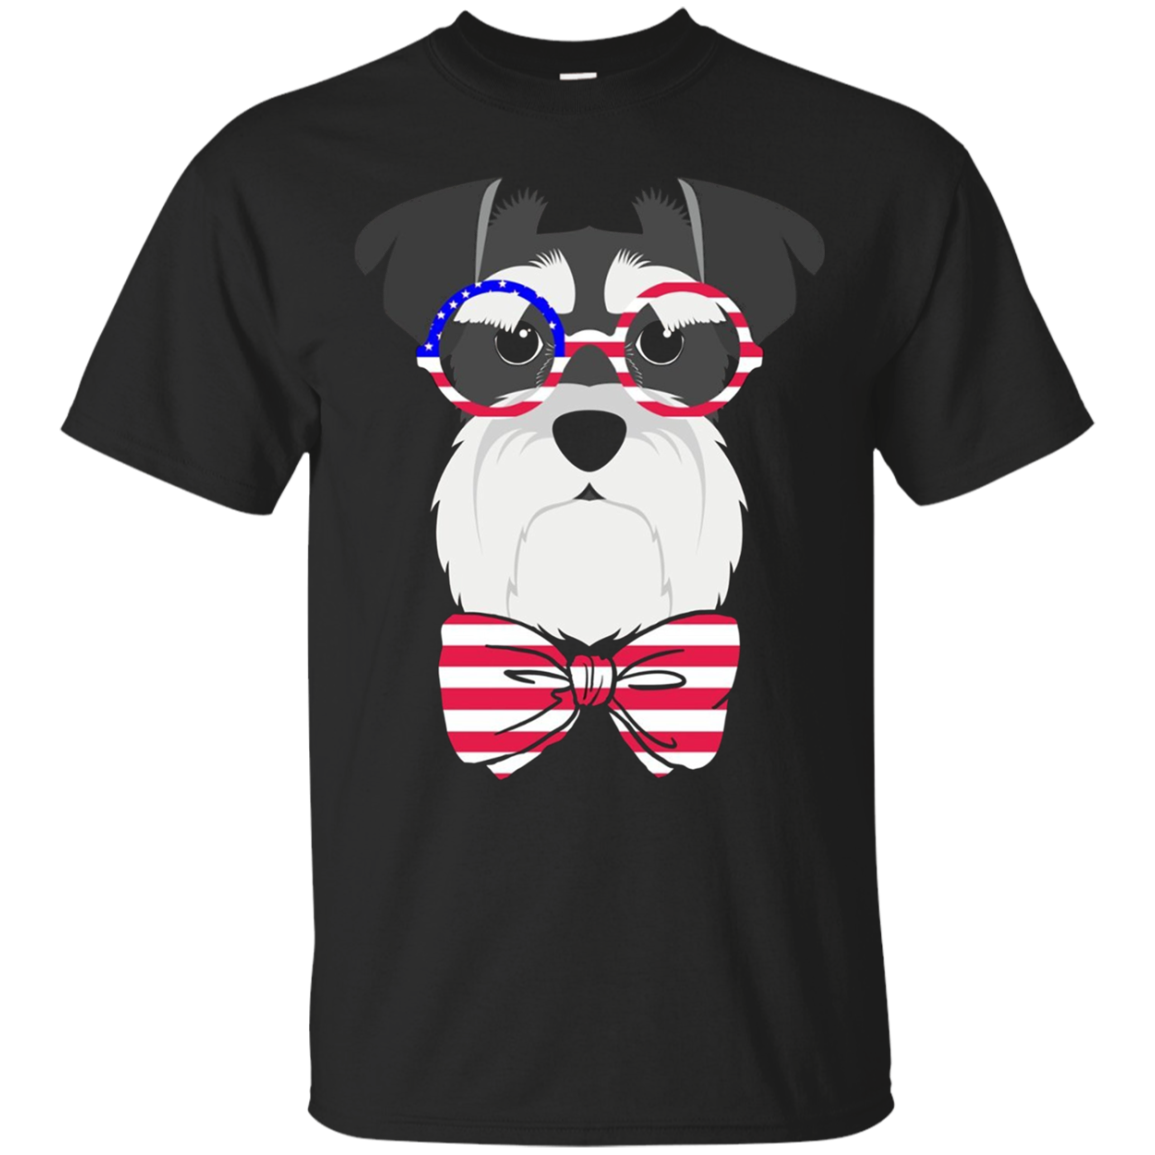 The 4th of July Patriotic Schnauzer with Bow-Tie  T-Shirt